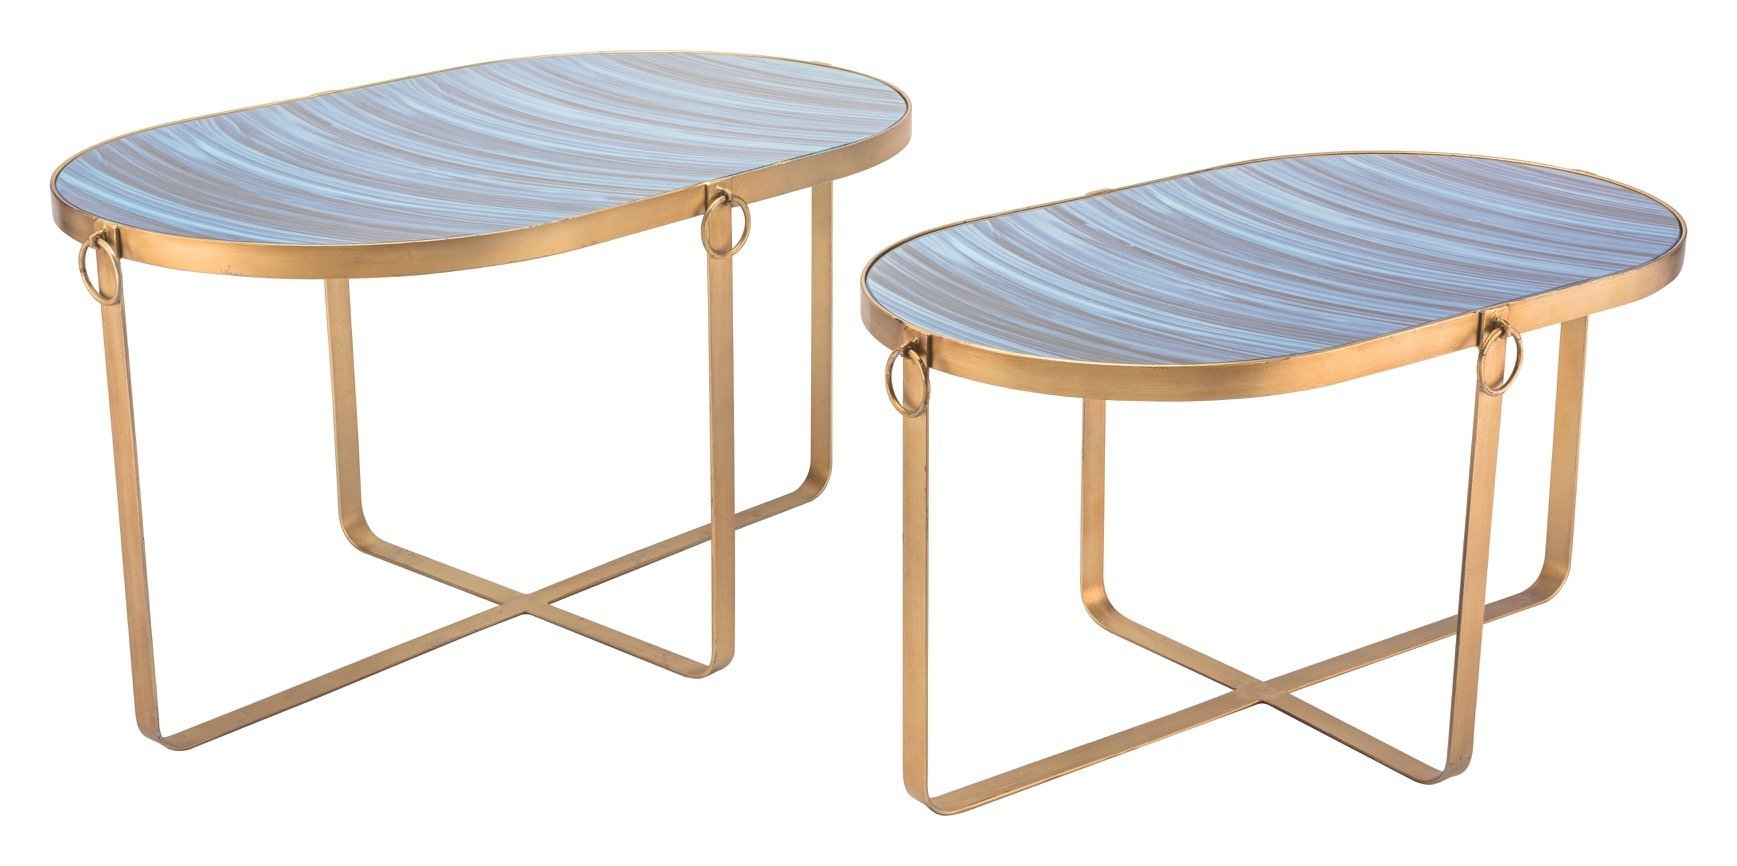 zaphire set accent tables blue antique gold side alan decor table round end tablecloth wine stoppers target mint green modern glass lamp couch legs mirrored small with attached